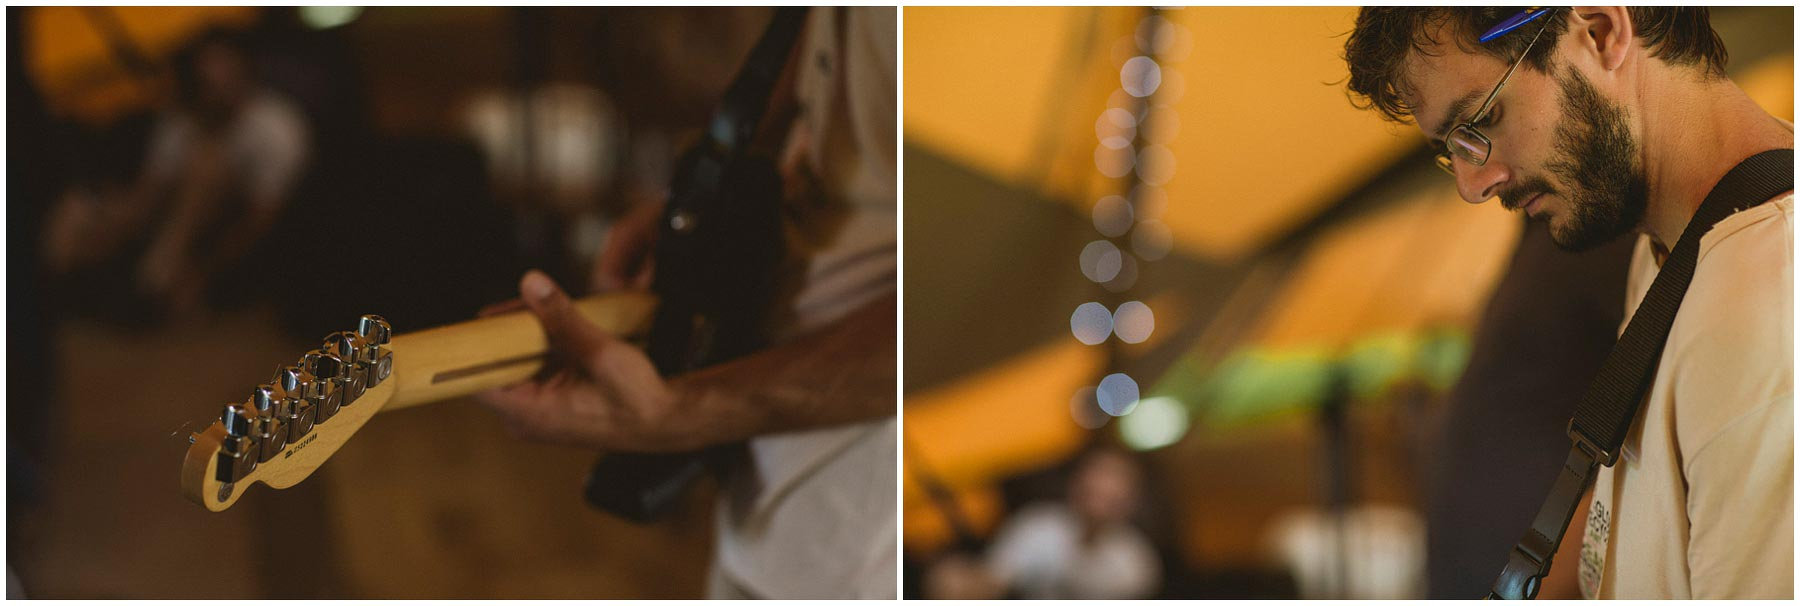 Kent-Festival-Tipi-wedding-photography_0011